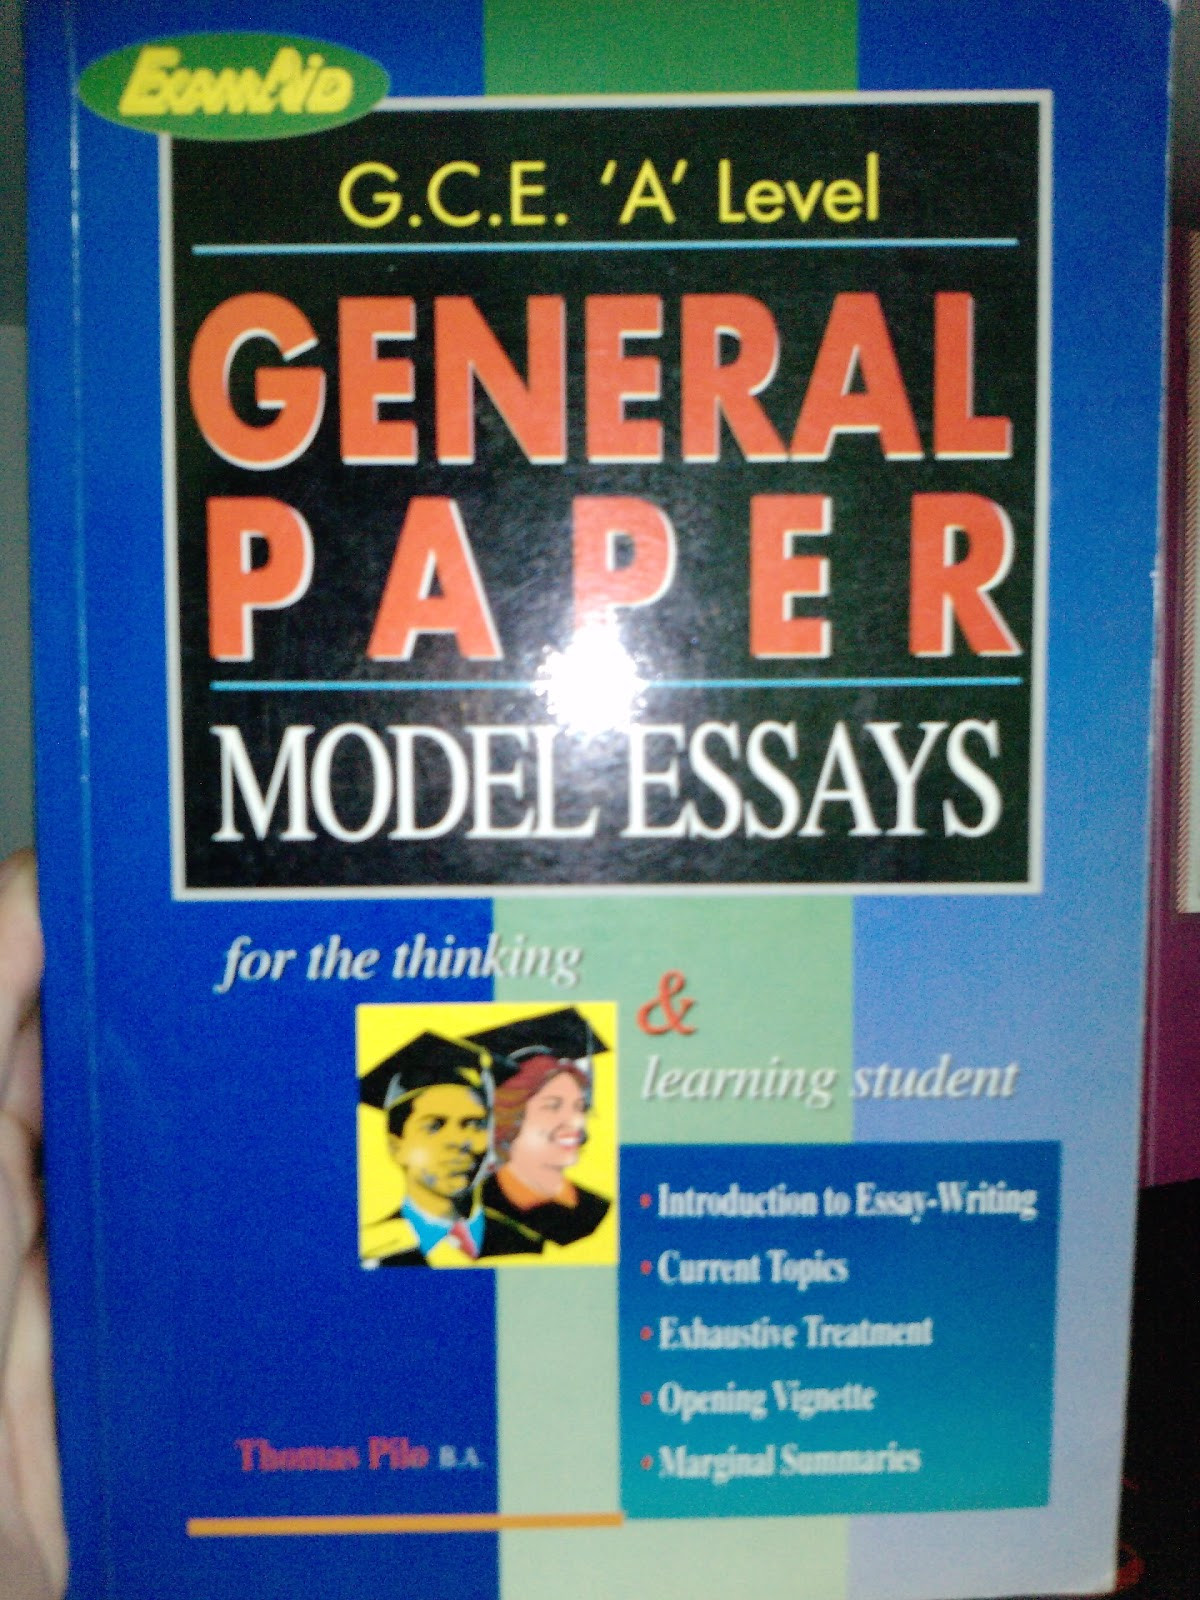 essays for general papers Essays - largest database of quality sample essays and research papers on general paper.